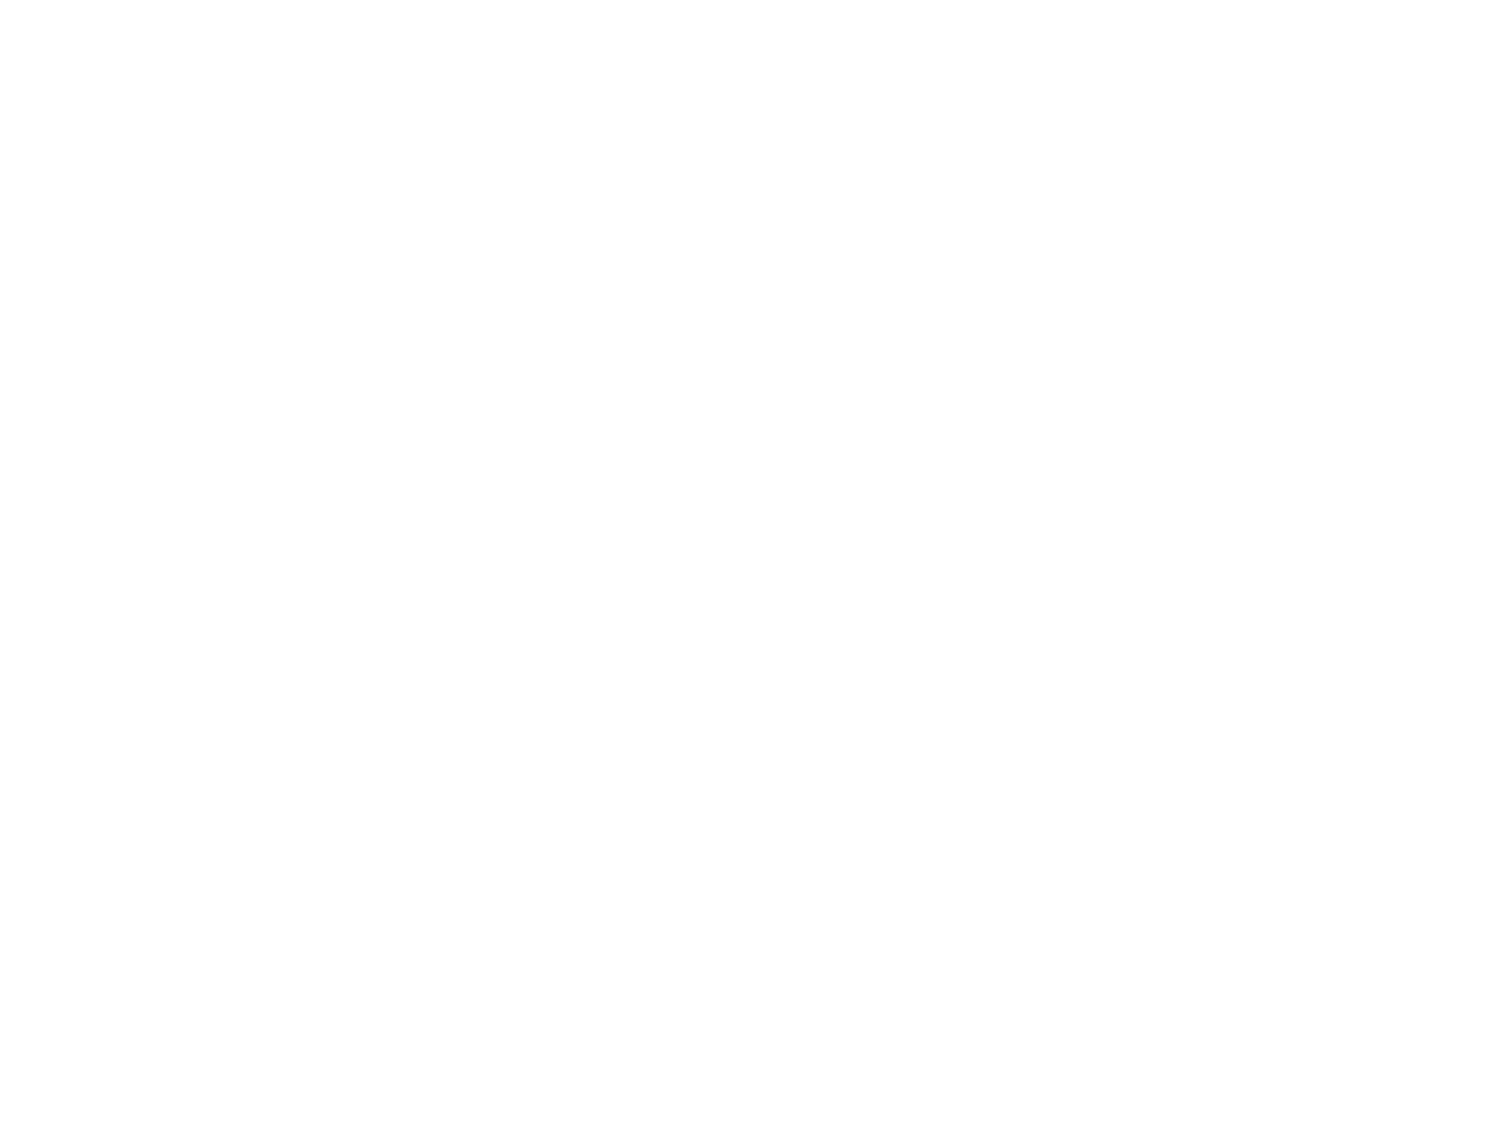 Johnson & Scofield Inc. Surveying & Engineering